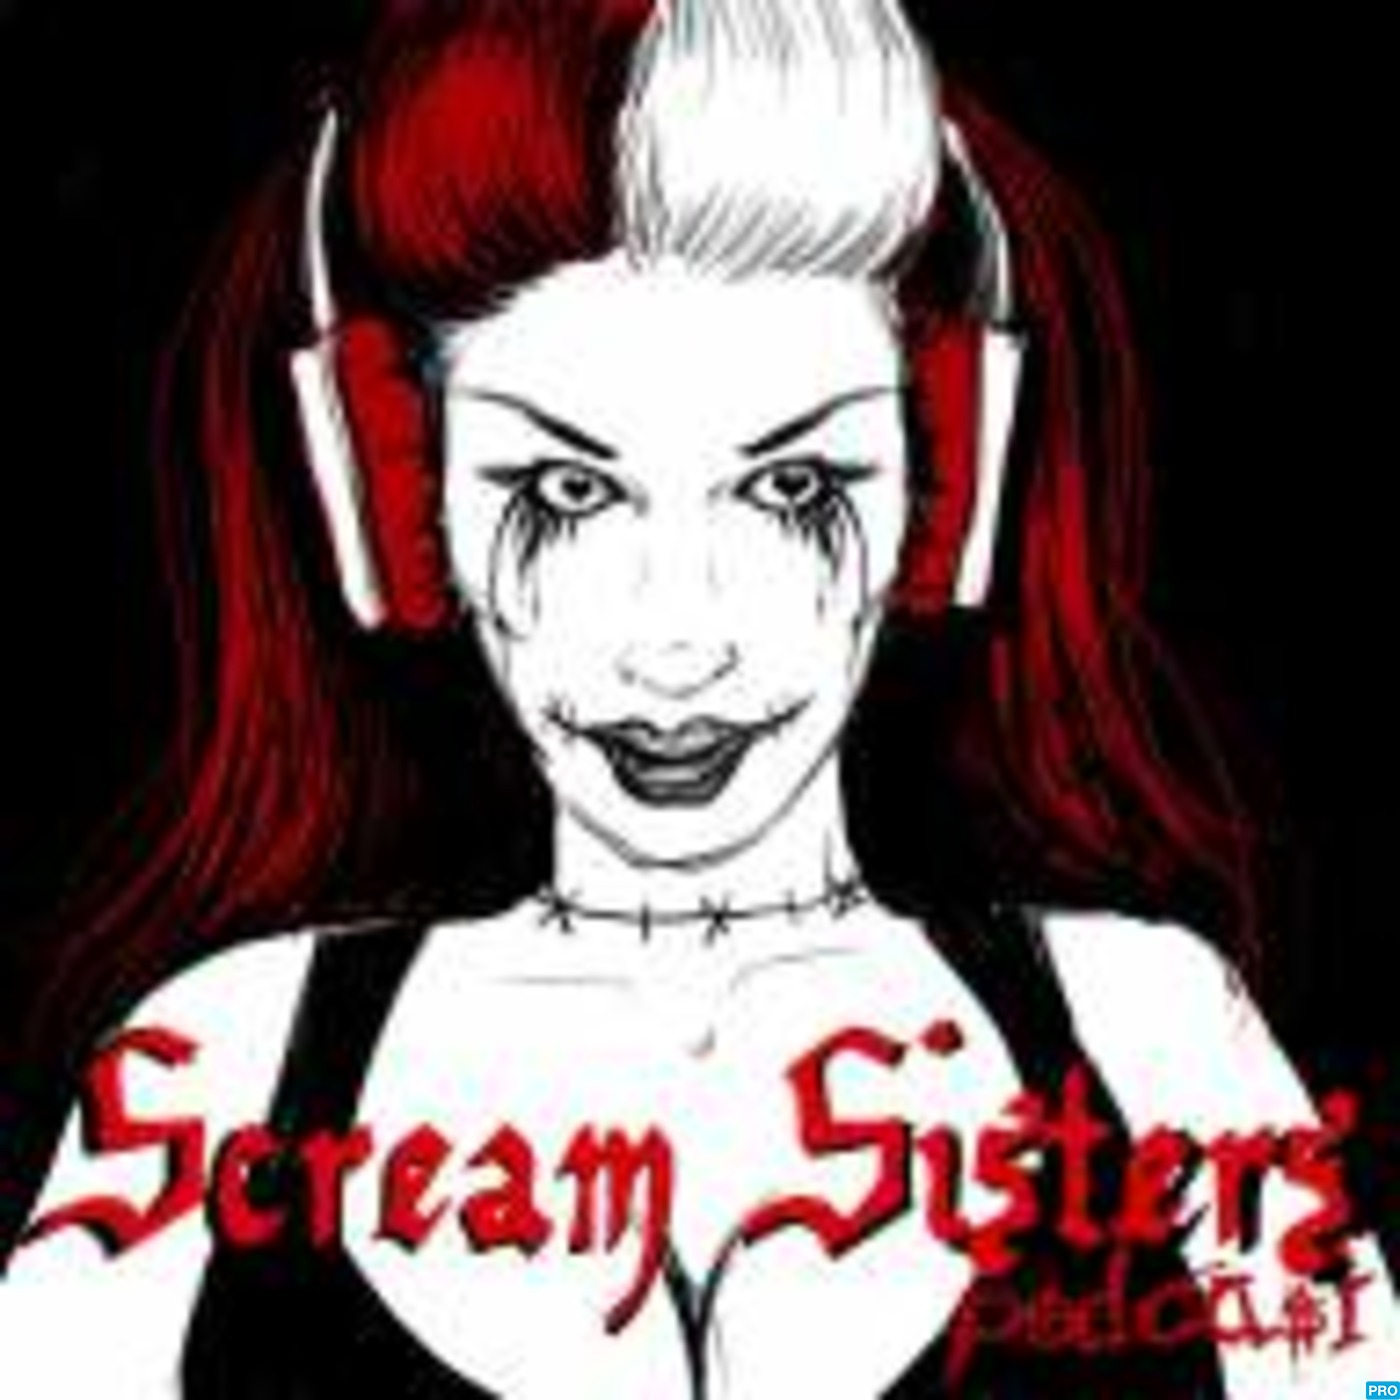 Scream Sisters Podcast